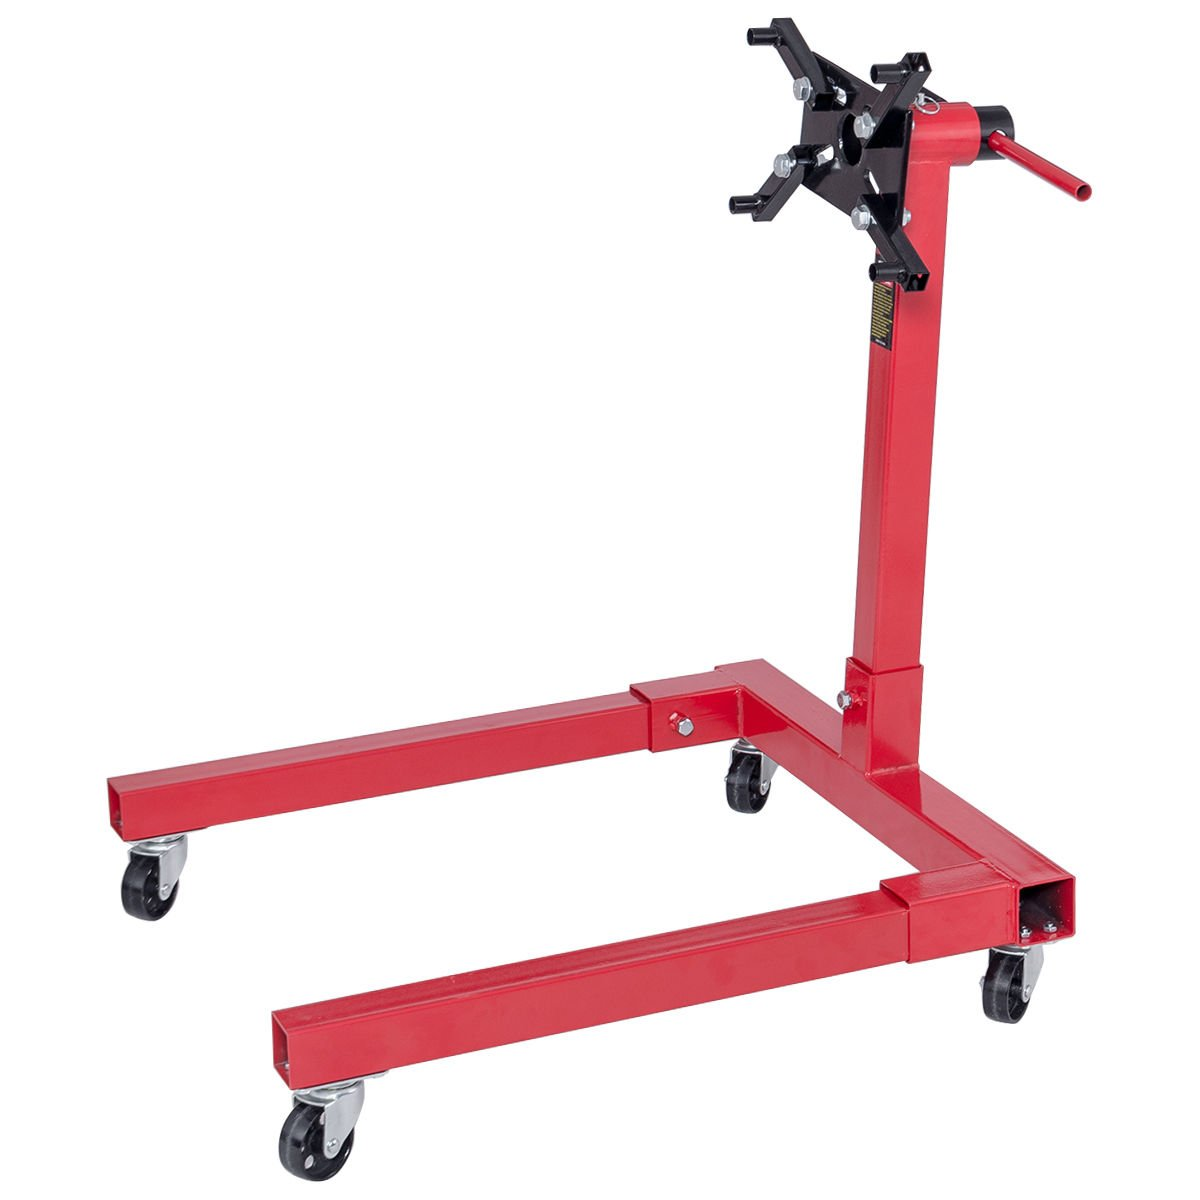 Cheap Engine Test Stand, find Engine Test Stand deals on line at